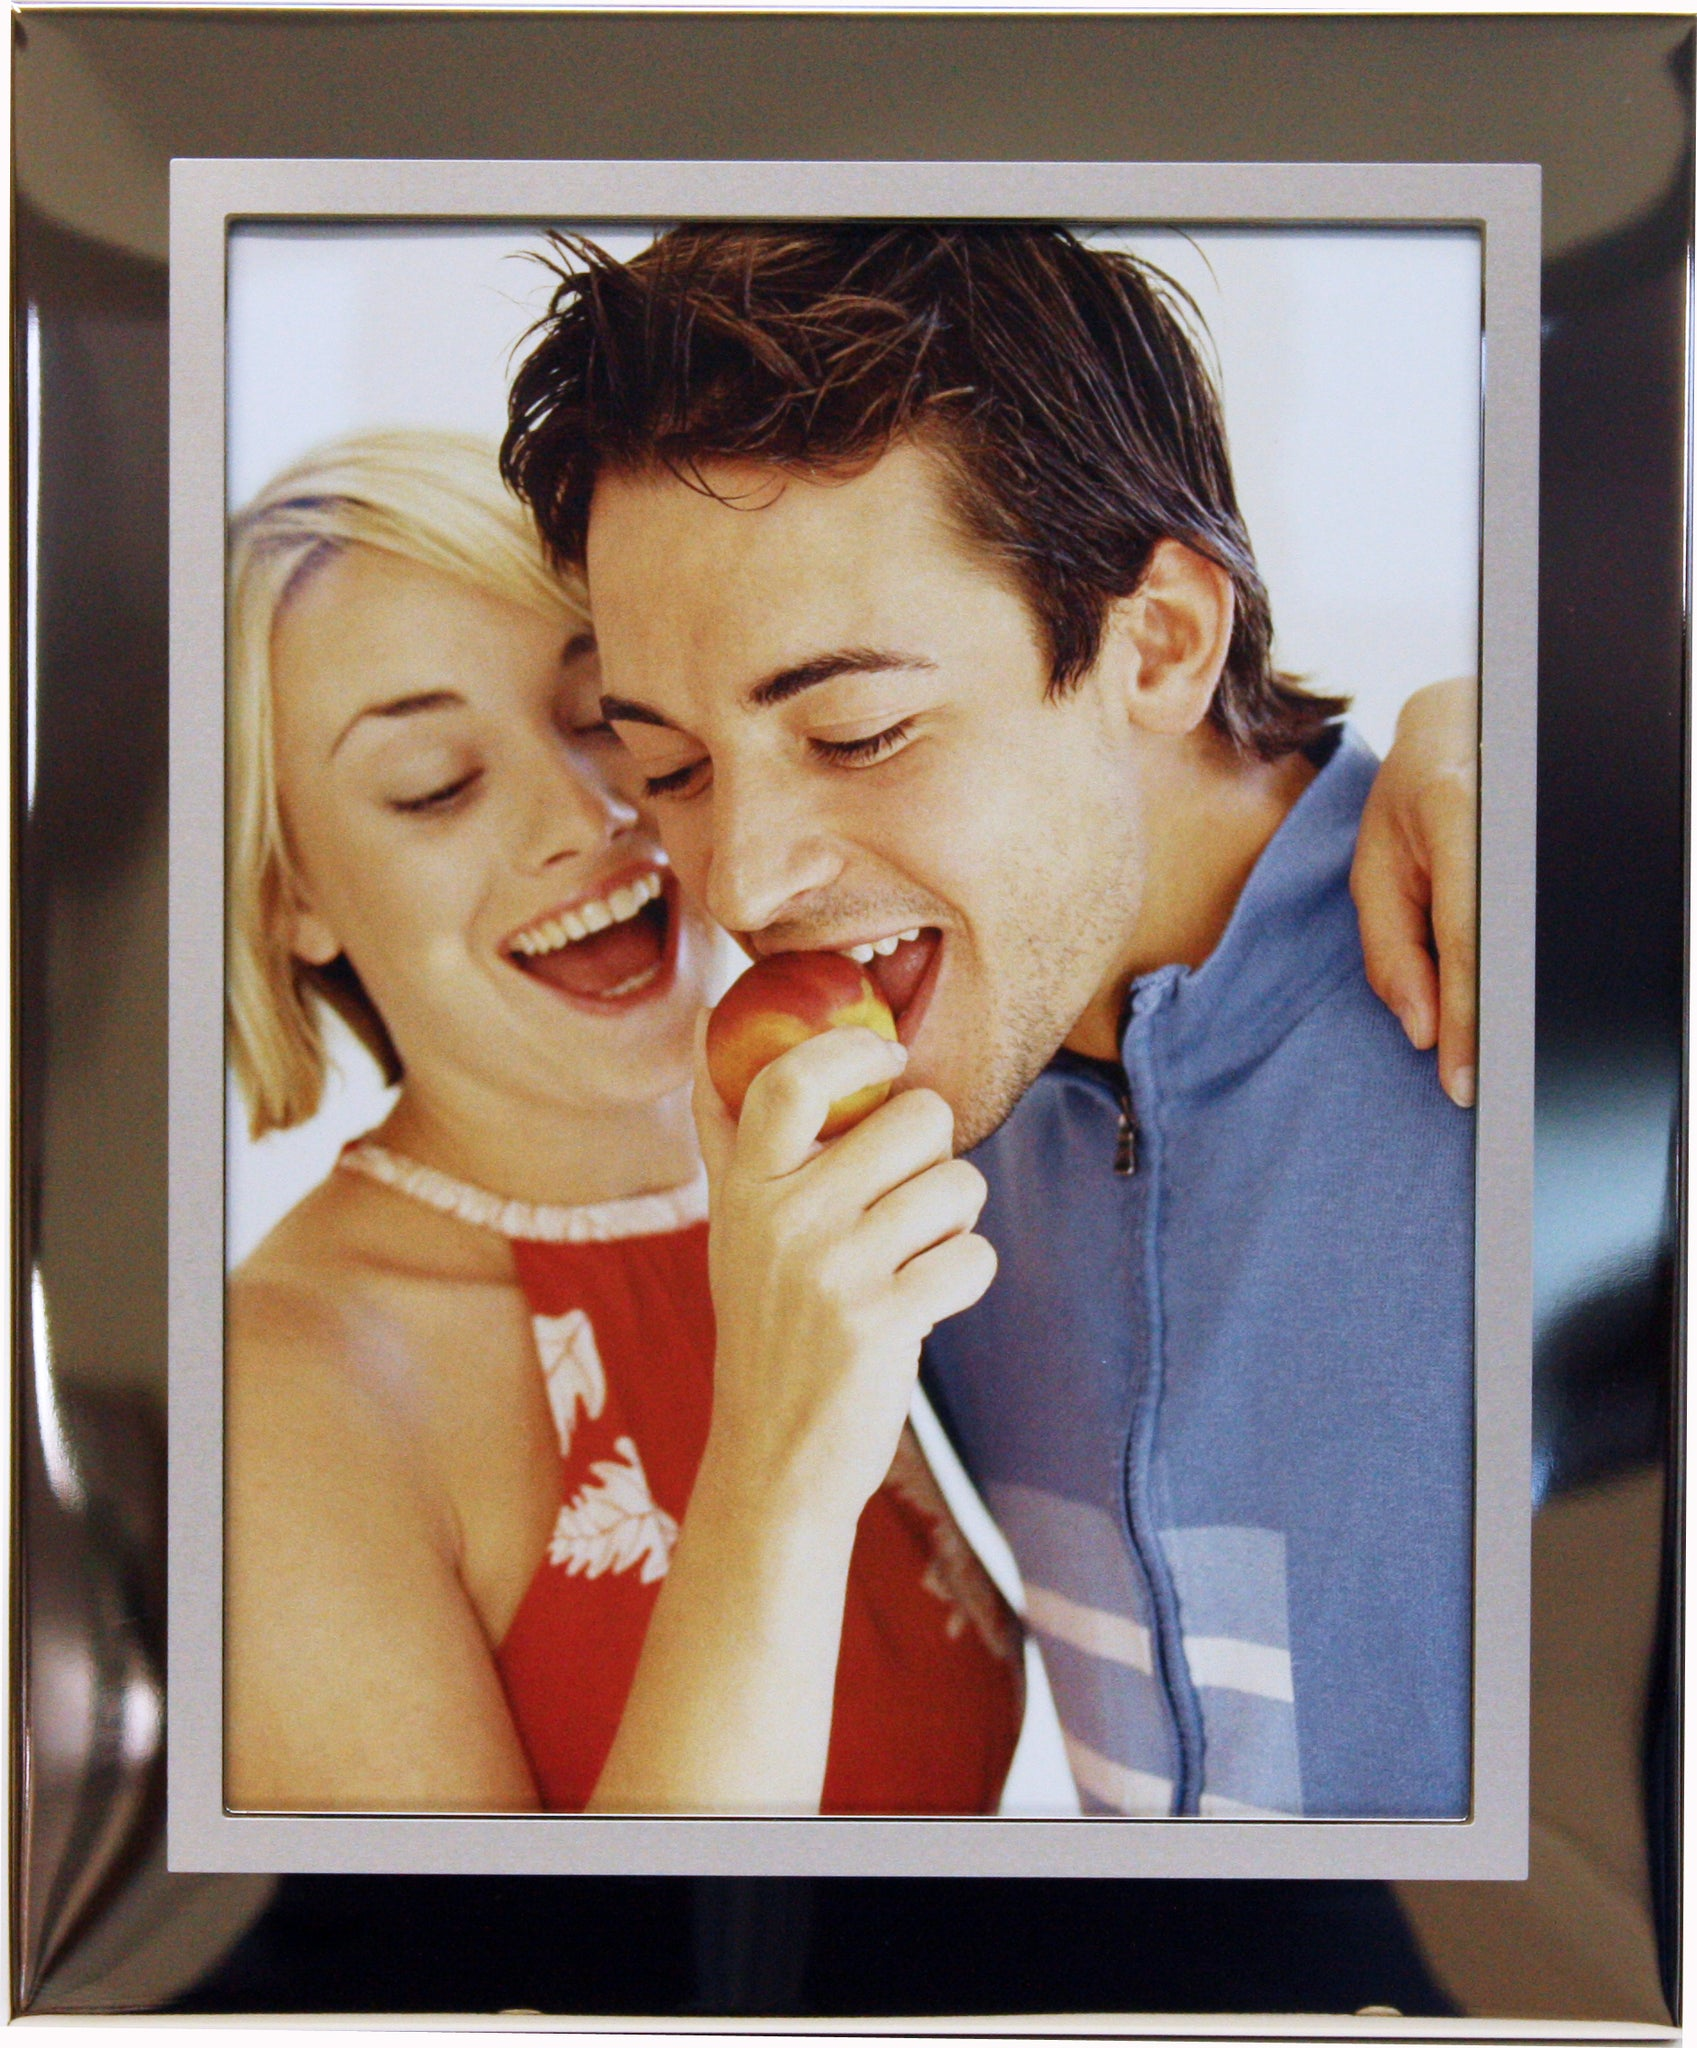 8x10 Nickel Plated Photo Frame with Inside Satin Finish